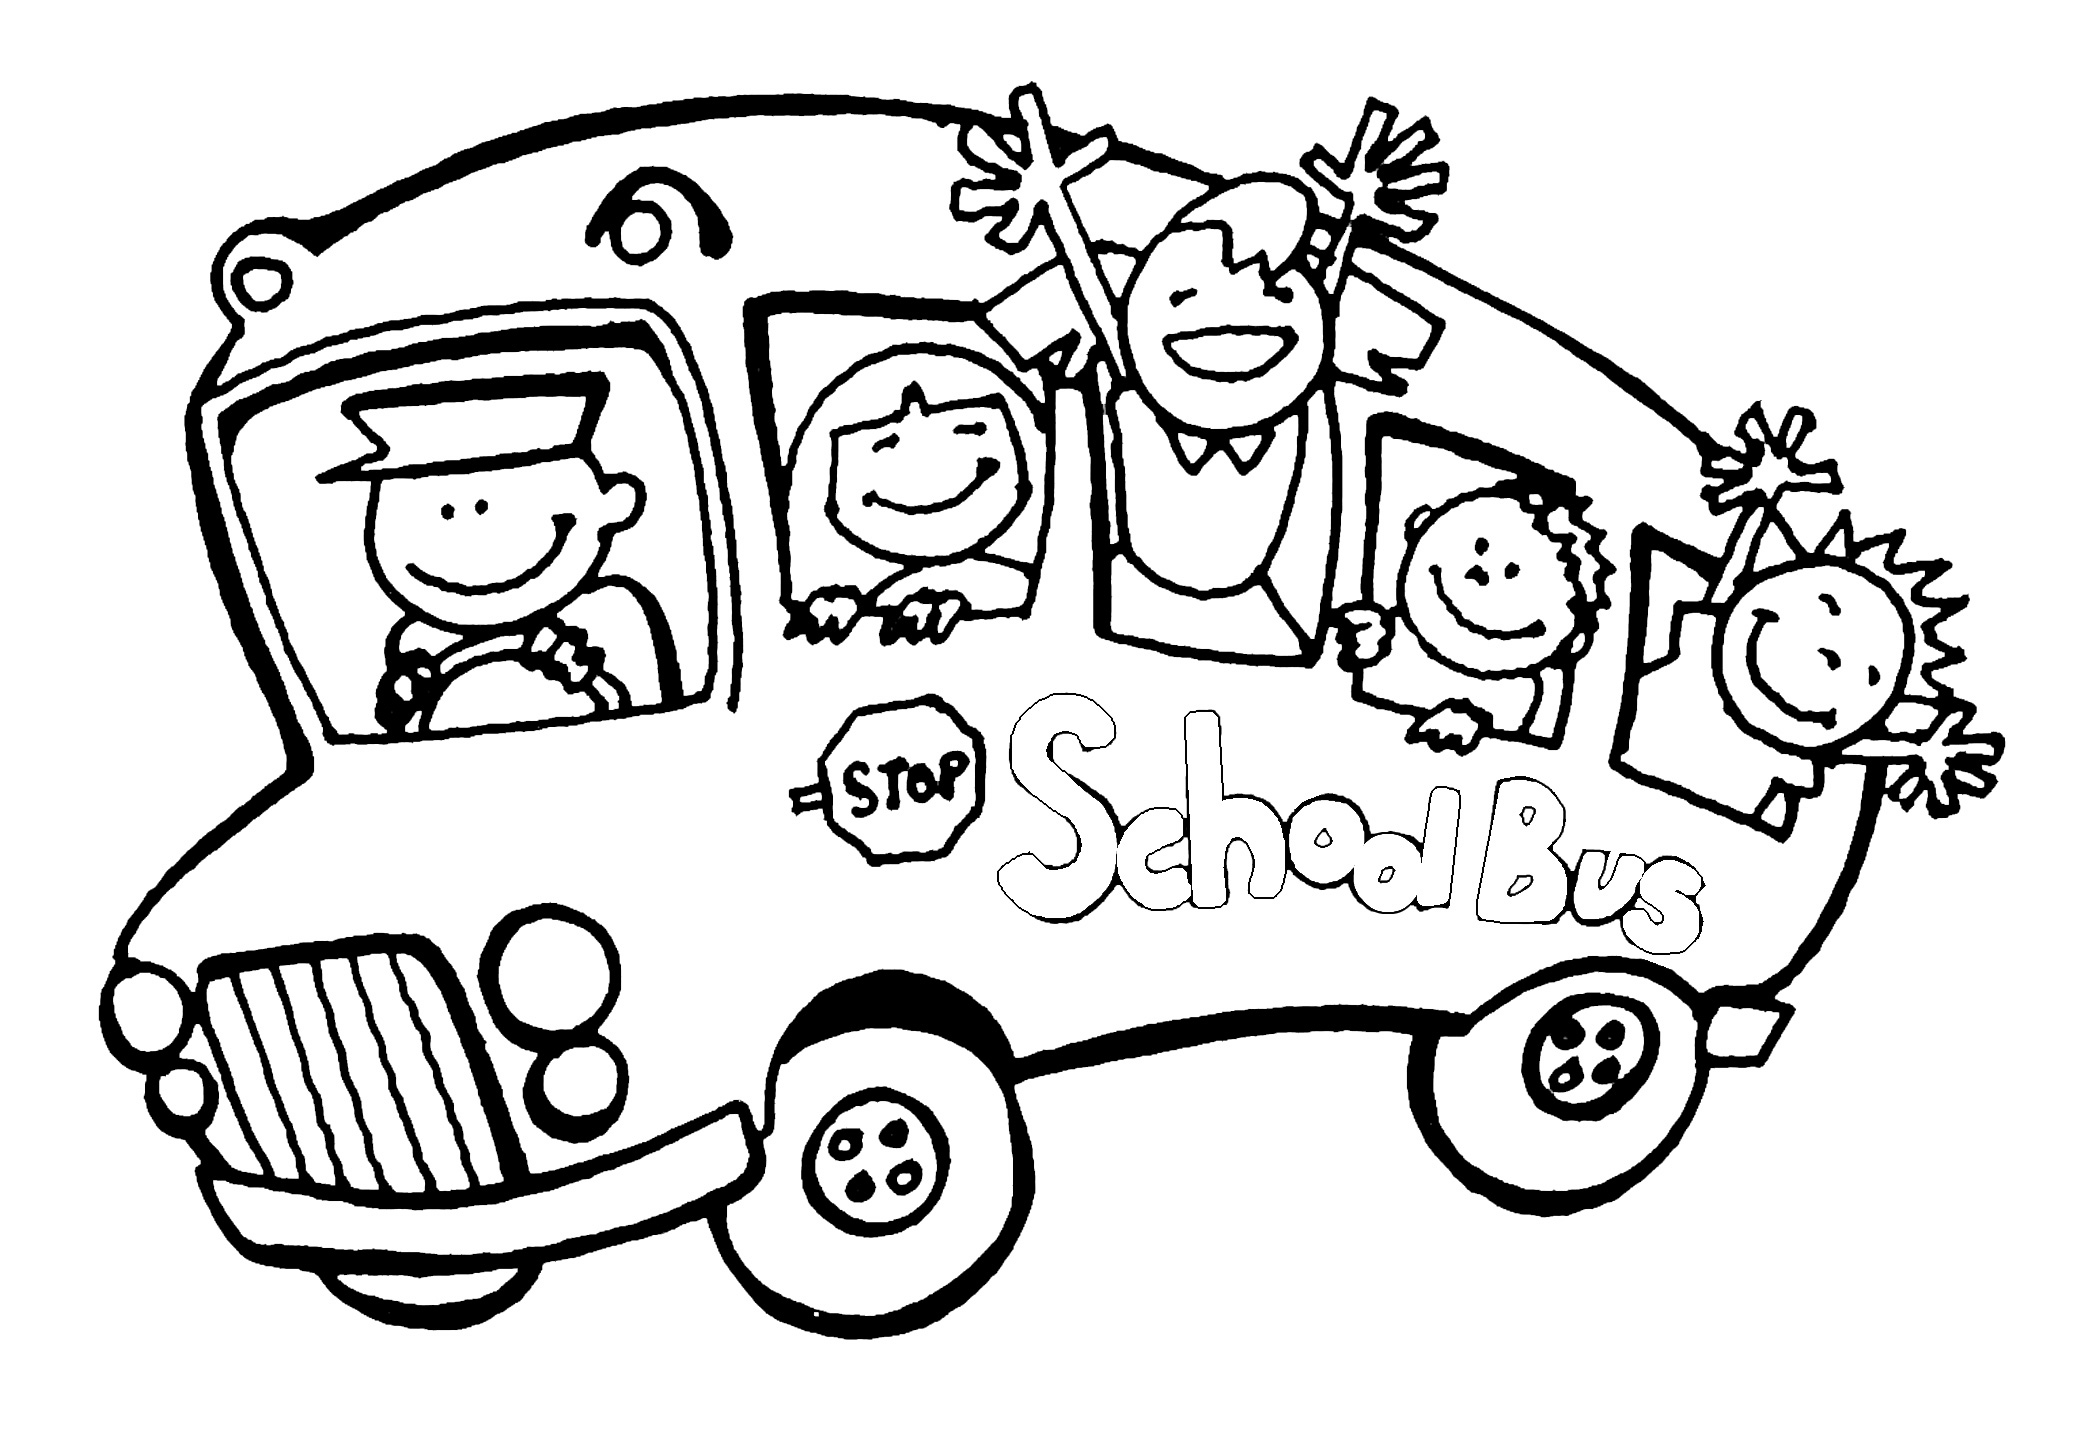 Kindergarten Coloring Sheets 03 Sheri Sarton Gallery Of Free Preschool Coloring Pages Page for Kindergarten School Download